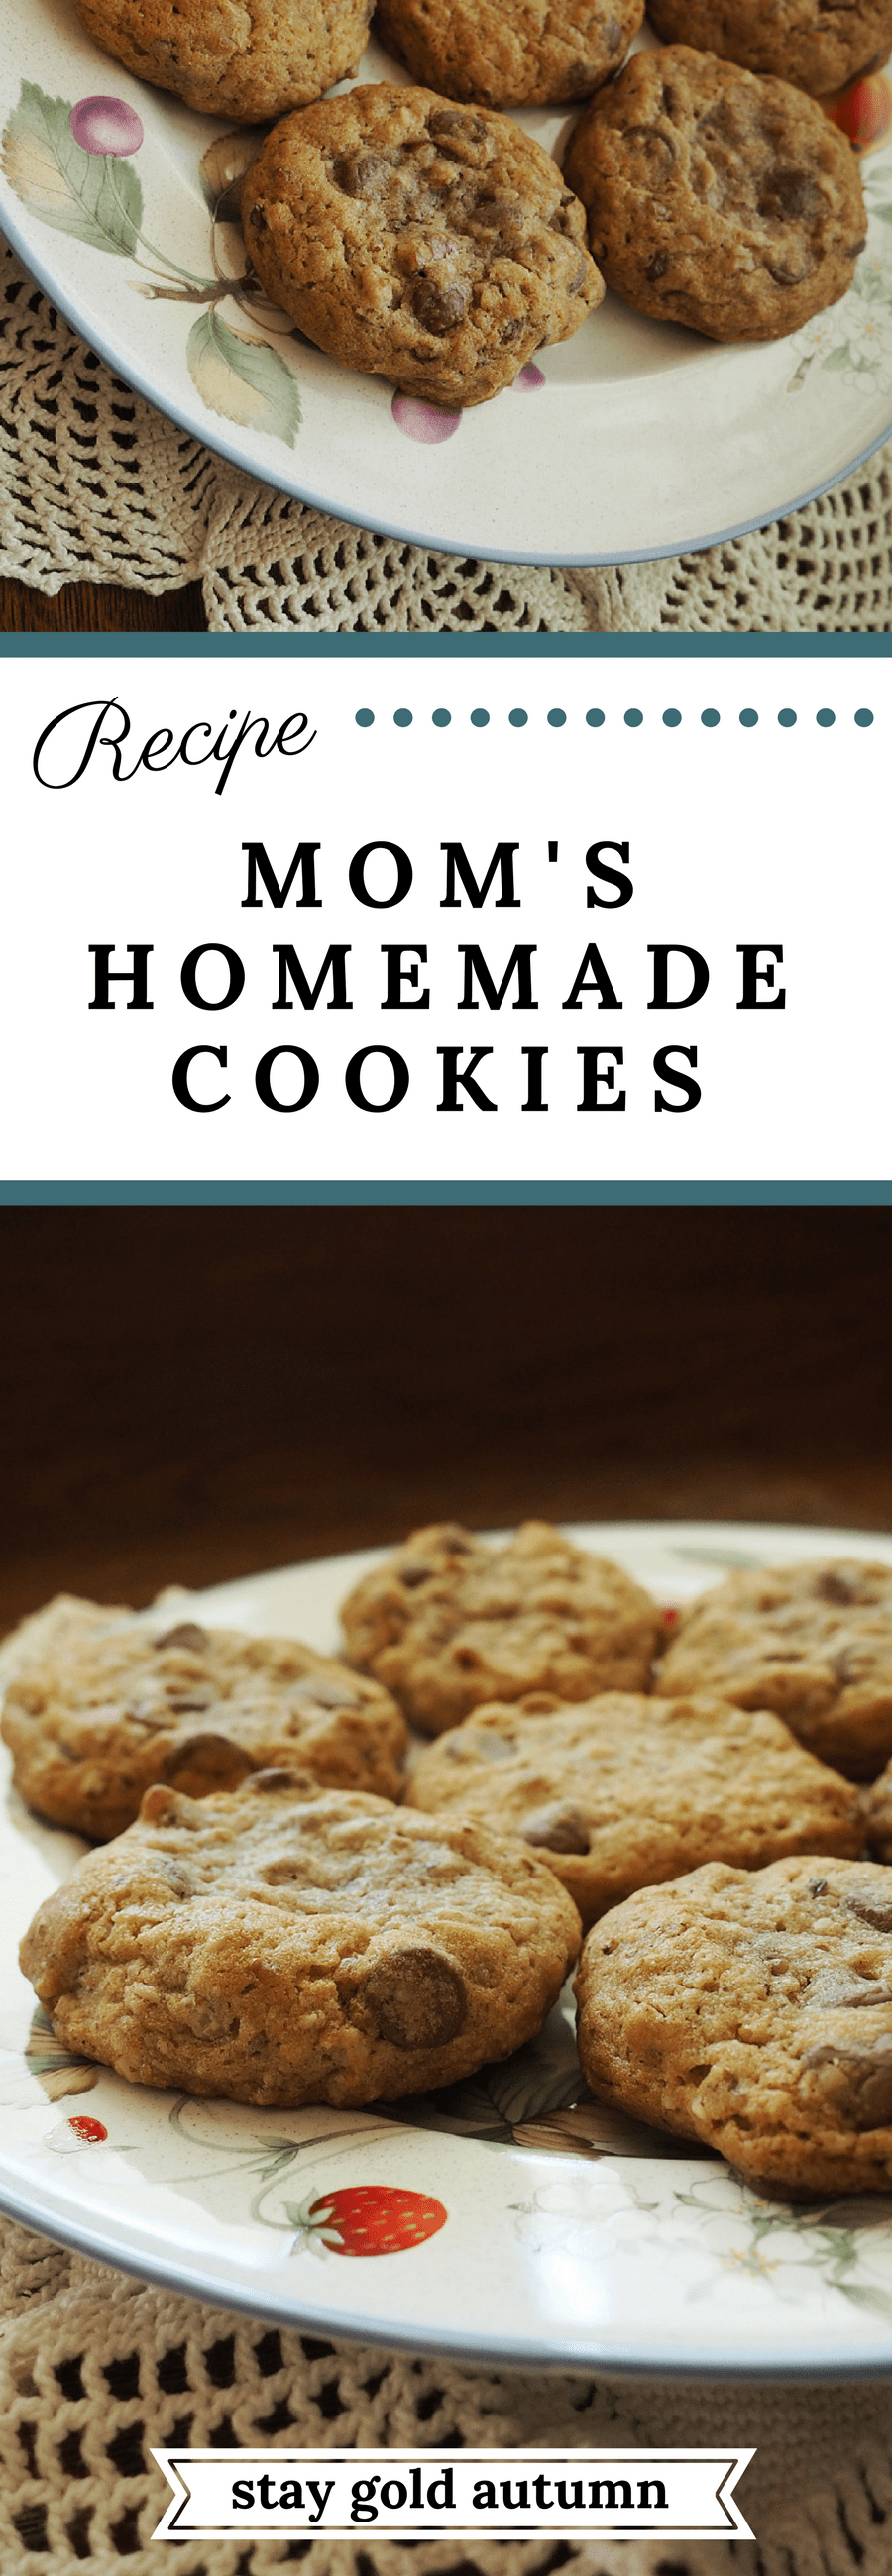 Mom's homemade cookies: every time I go home, I always look forward to these cookies being fresh out of the oven. | Stay gold Autumn